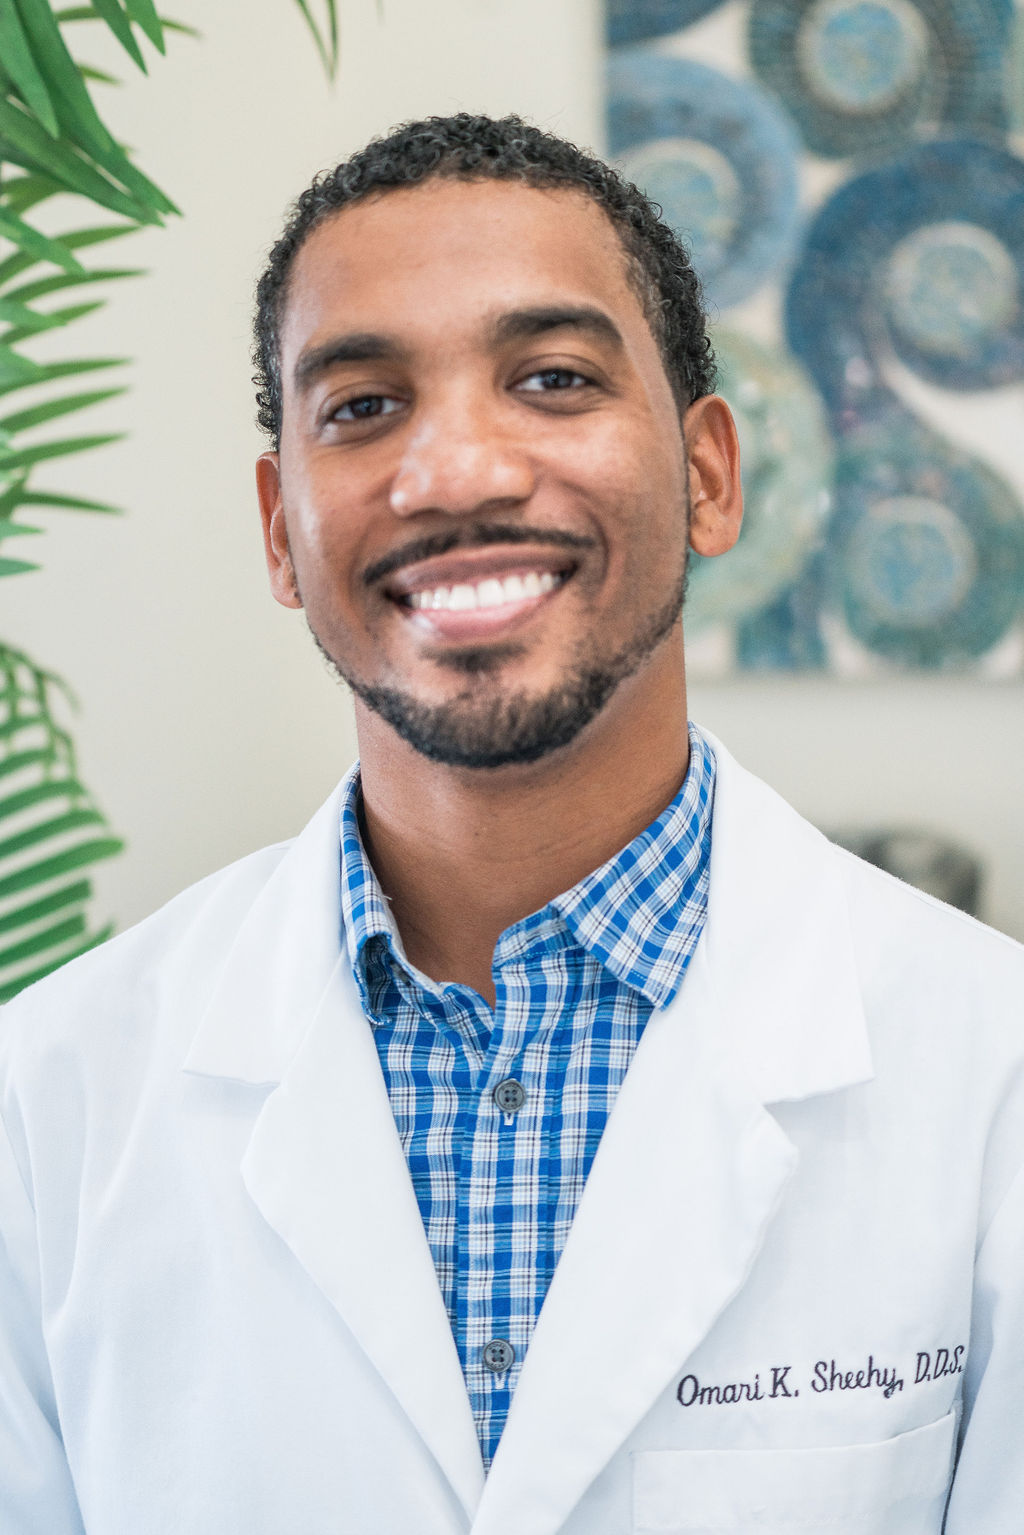 Omari Sheehy, DDS - Dr. O wants to live in a world where relationships matter and every patient comes to the dentist without fear knowing that they will be greeted warmly and treated like family. His family has provided healthcare to the Tampa Bay area for more than 60 yrs. Born in Houston, Tx and raised in Atlanta, Ga, Dr. Sheehy is a die hard sports fan and can be found at Raymond James Stadium on Sundays when he is not biking, running, or hiking.